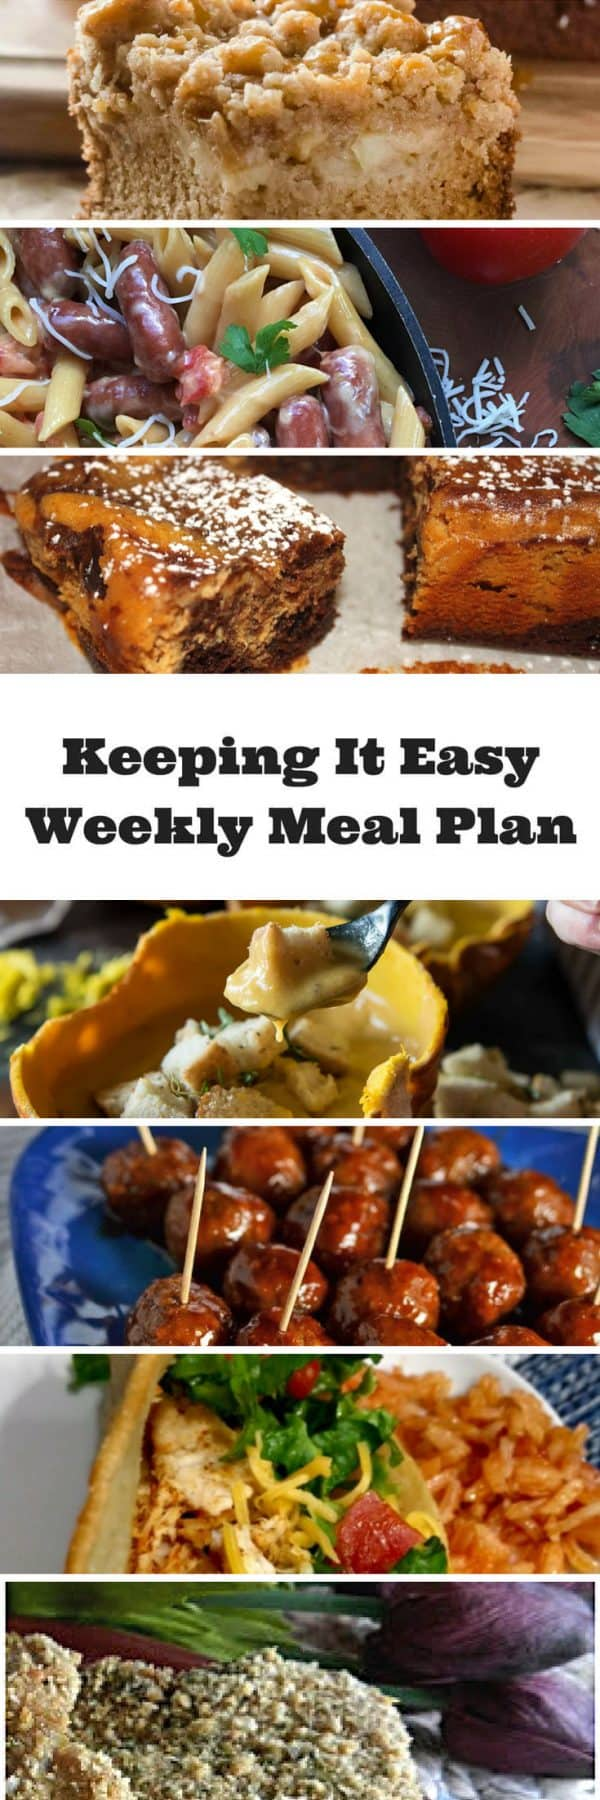 Easy Weekly Meal Plan #40 from My Fearless Kitchen. This week's meal plan includes Apple Butterscotch Crumb Cake, Pumpkin Beer Cheese Soup, Slow Cooker Honey-BBQ Meatballs, One Pot Cheesy Smoked Sausage Pasta, Quick Weeknight Chicken Tacos, Parmesan Crusted Pork Chops, and Pumpkin Chocolate Brownies.